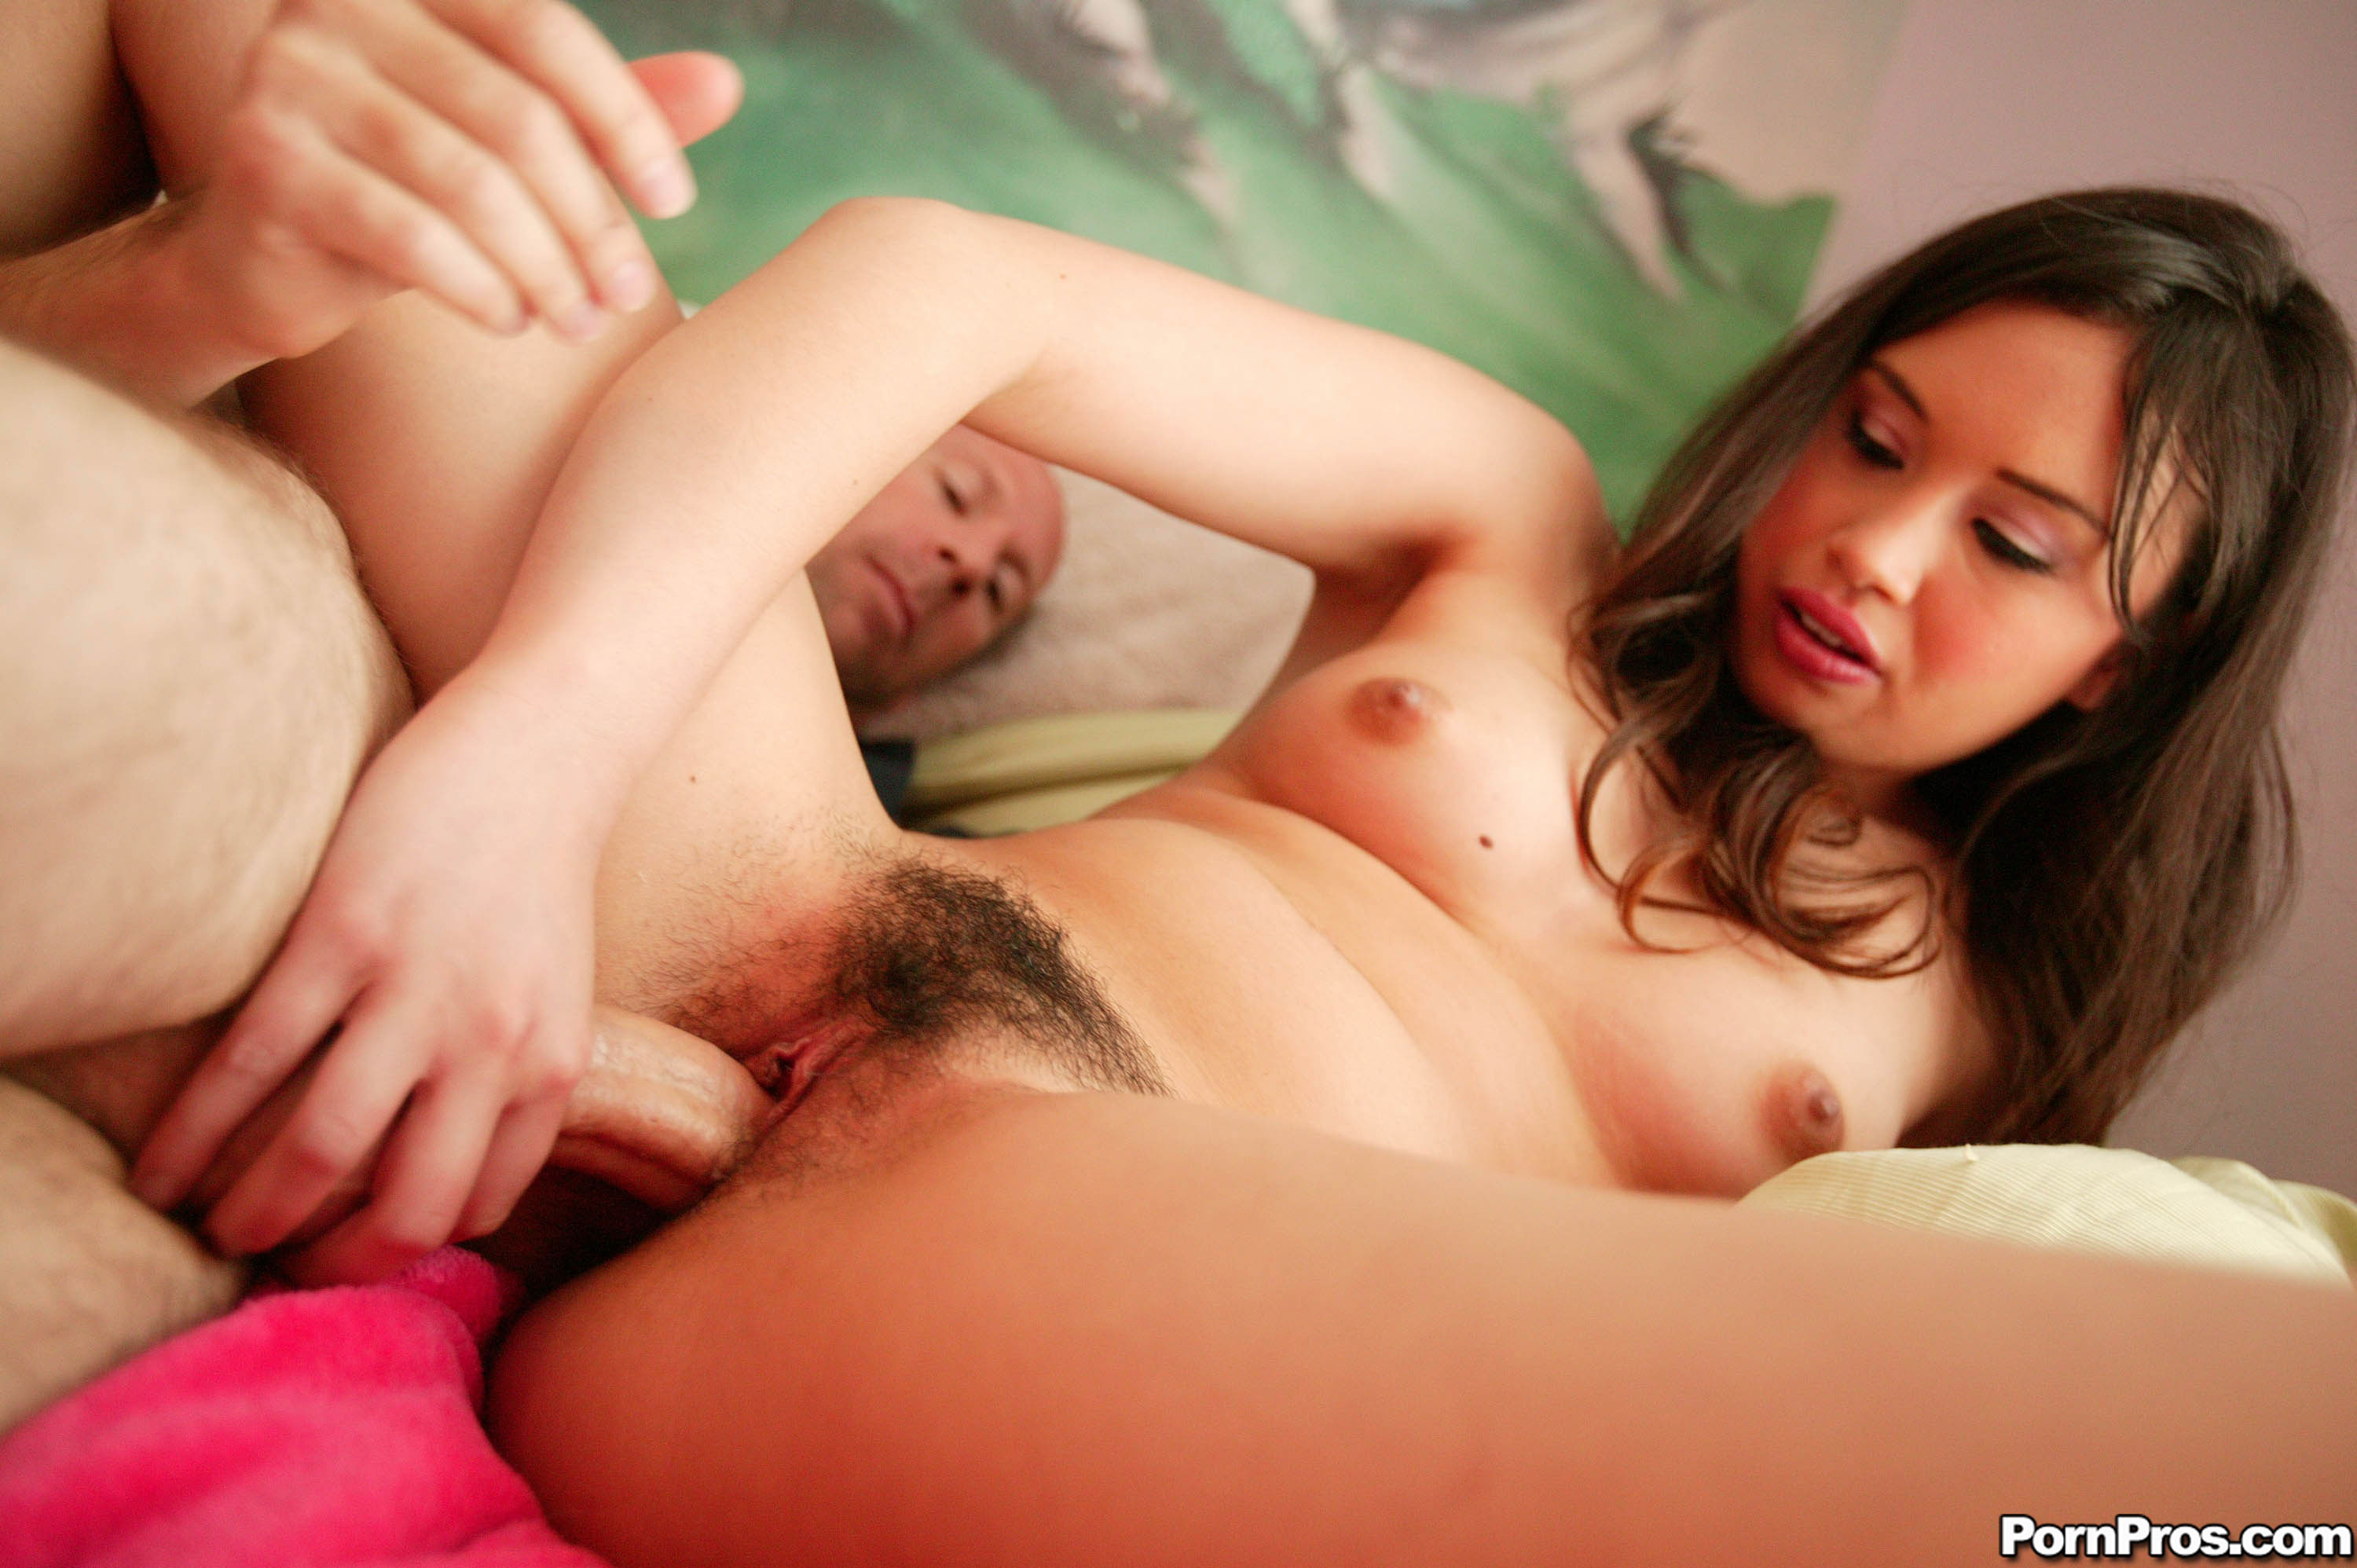 italian hairy mature woman